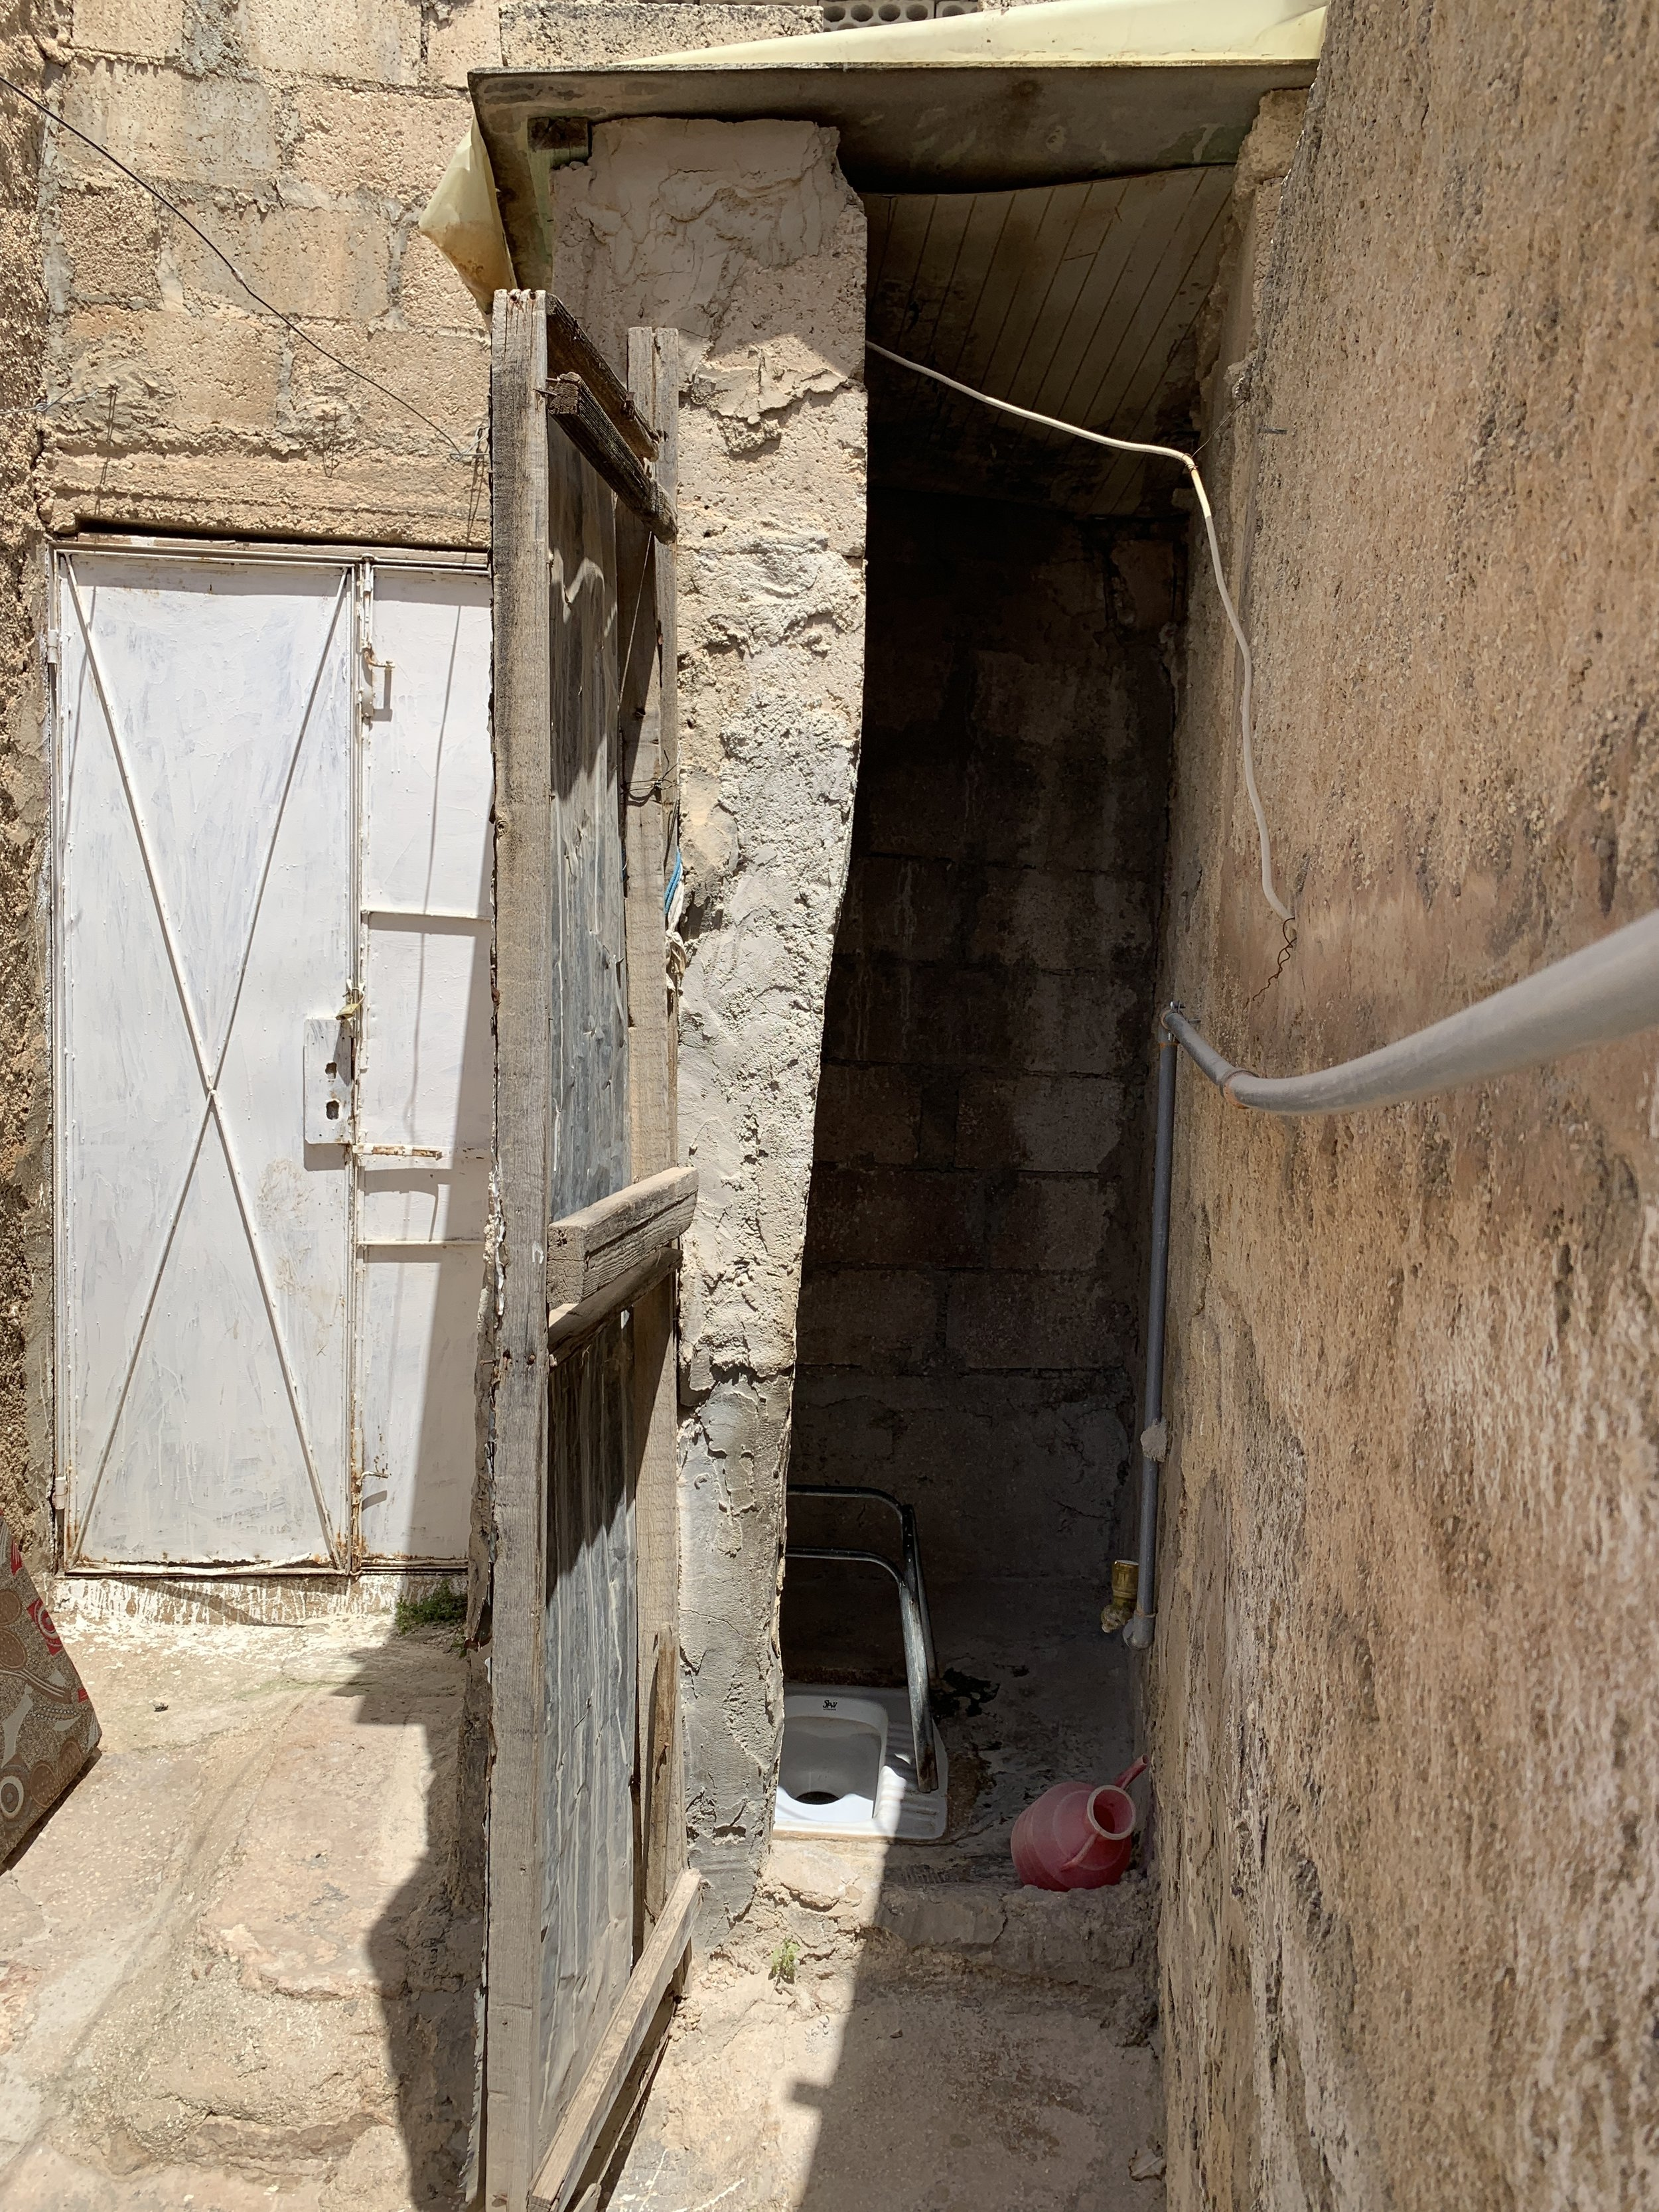 Renovating bathrooms - Helping families by fixing their basic needs